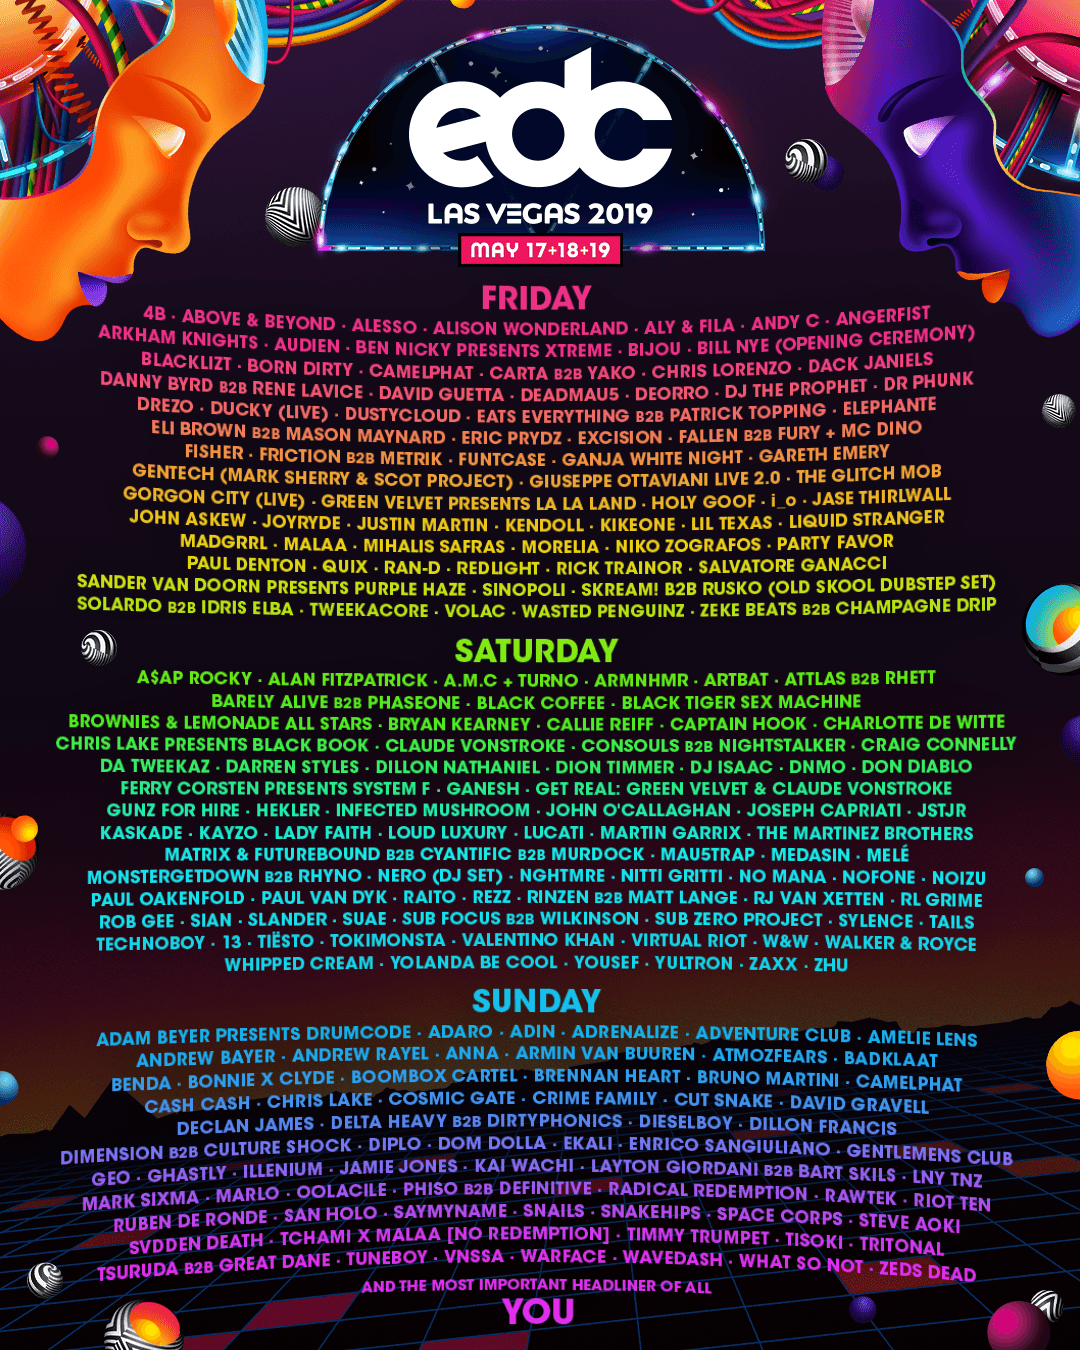 EDC Las Vegas 2019 lineup by day